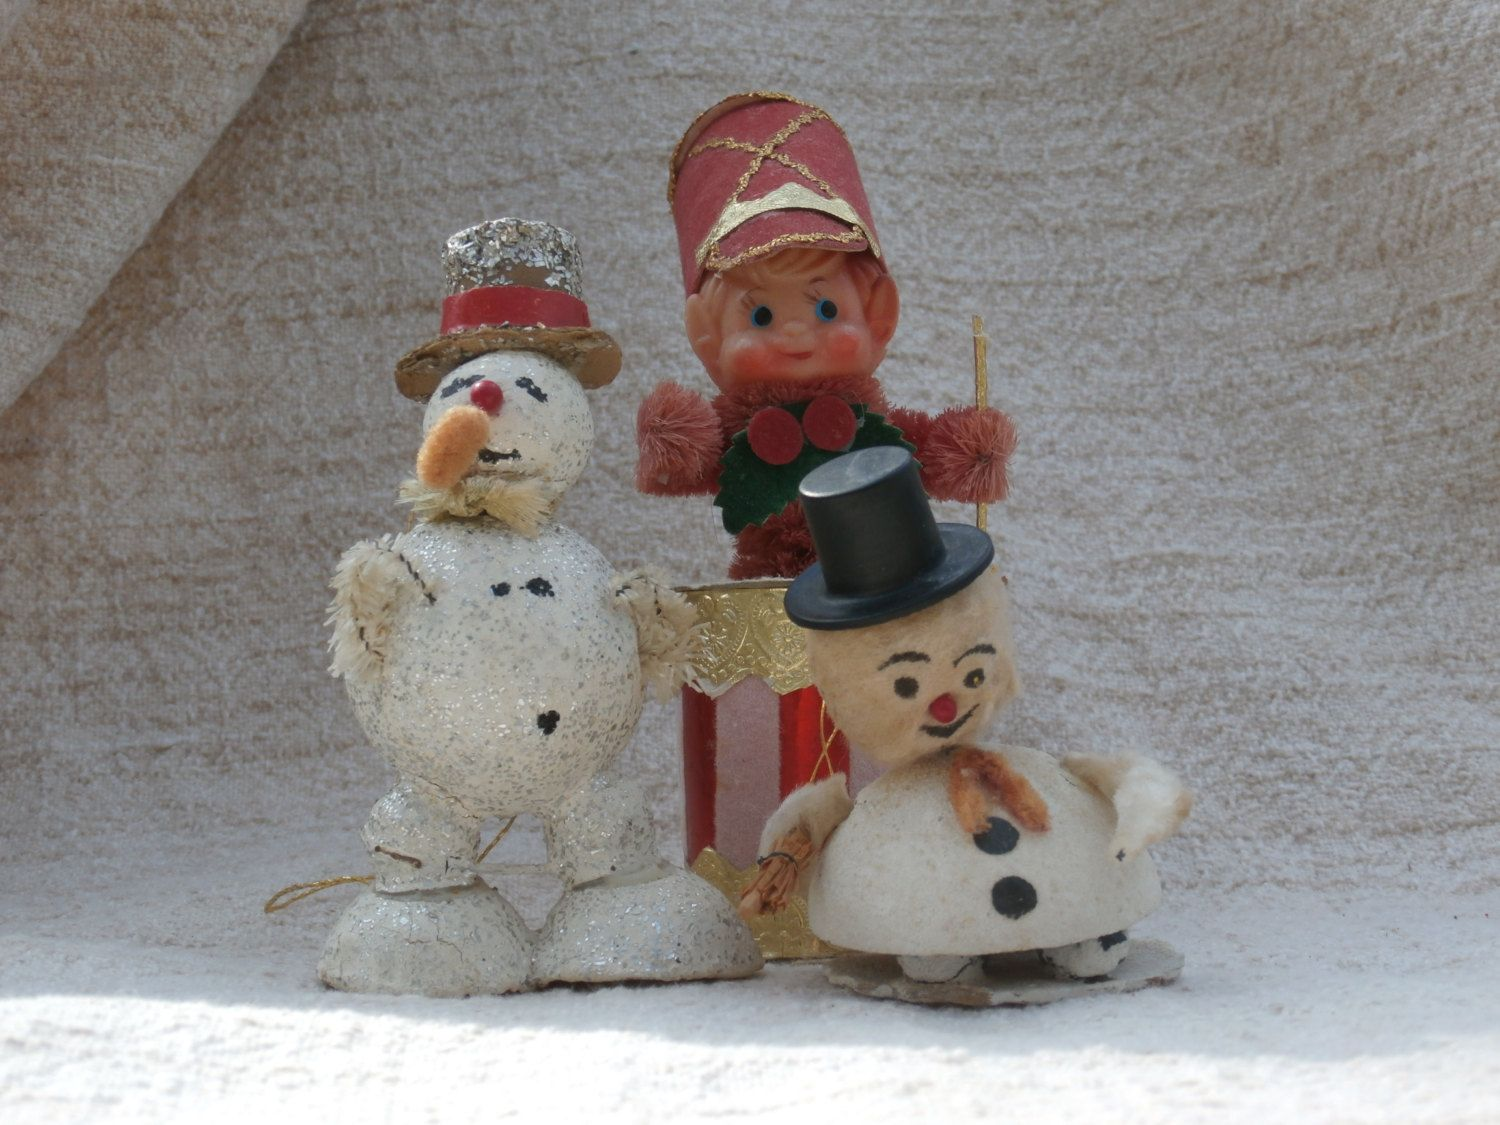 3 Vintage Japan Made Snowman, Drummer Boy Ornaments, Spun Cotton, Paper, Glitter, and Chenille Stem